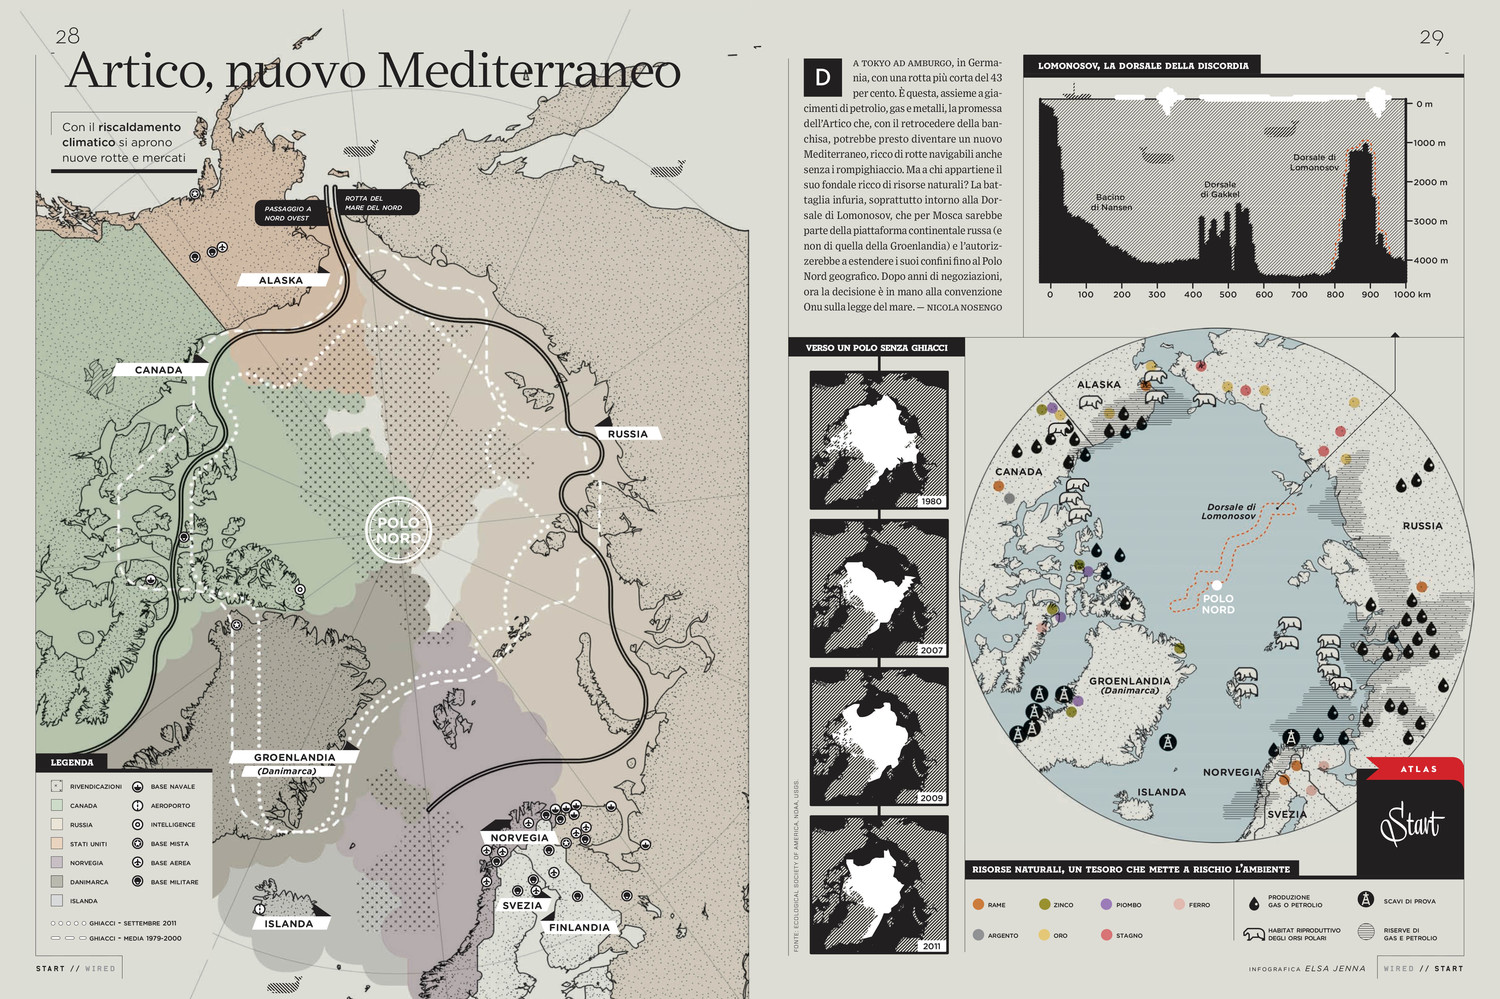 Wired Italy - Infographic on the melting of arctic ice.